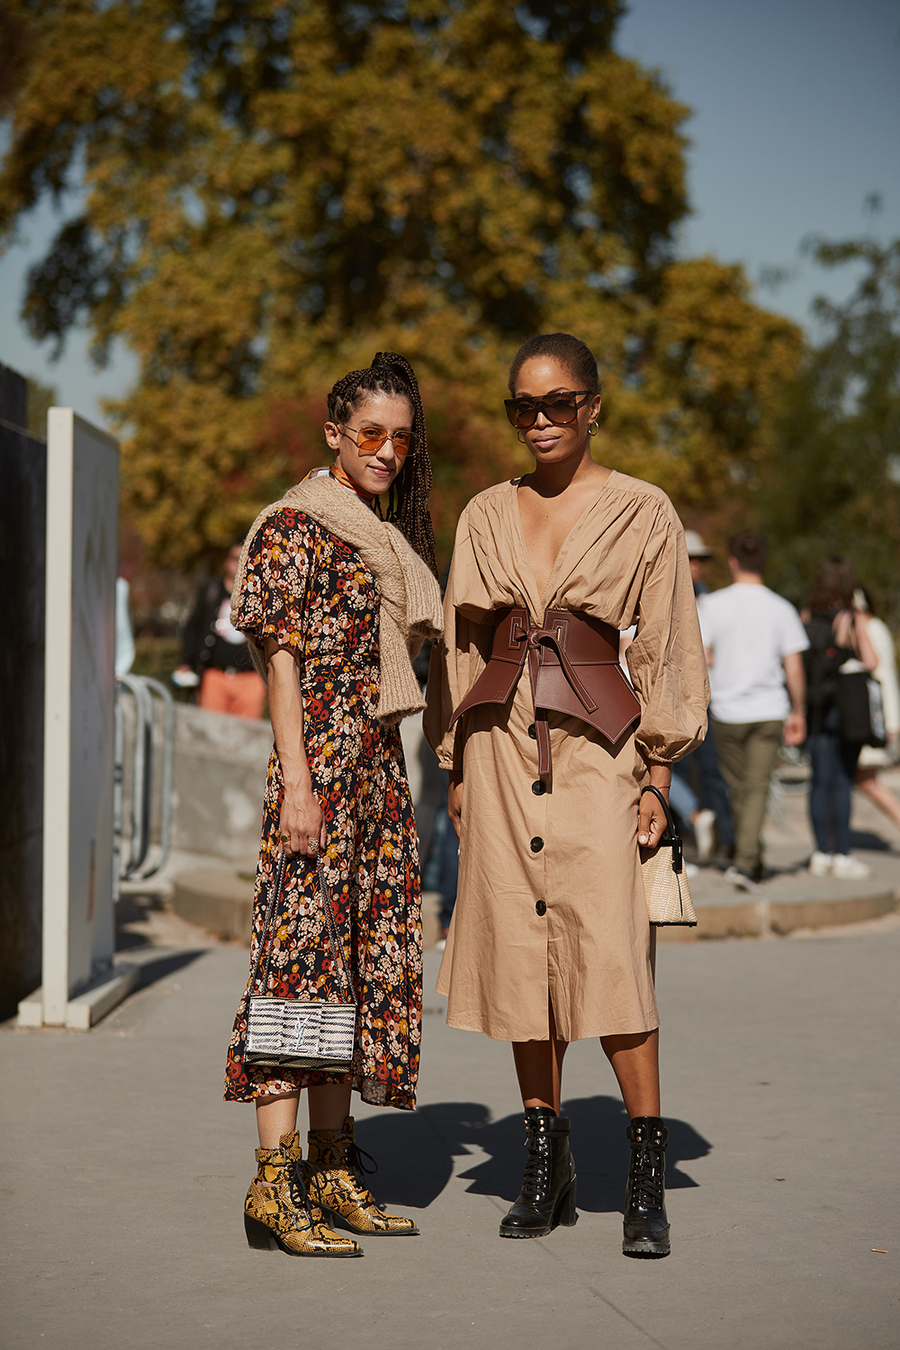 25 Neutral Dresses to Wear for Spring and Beyond — Street Style Spring Outfit Ideas — Floral midi dress, tan sweater over the shoulders, snake-print booties, tan khaki puff-sleeve dress, Loewe corset Obi belt, and black boots